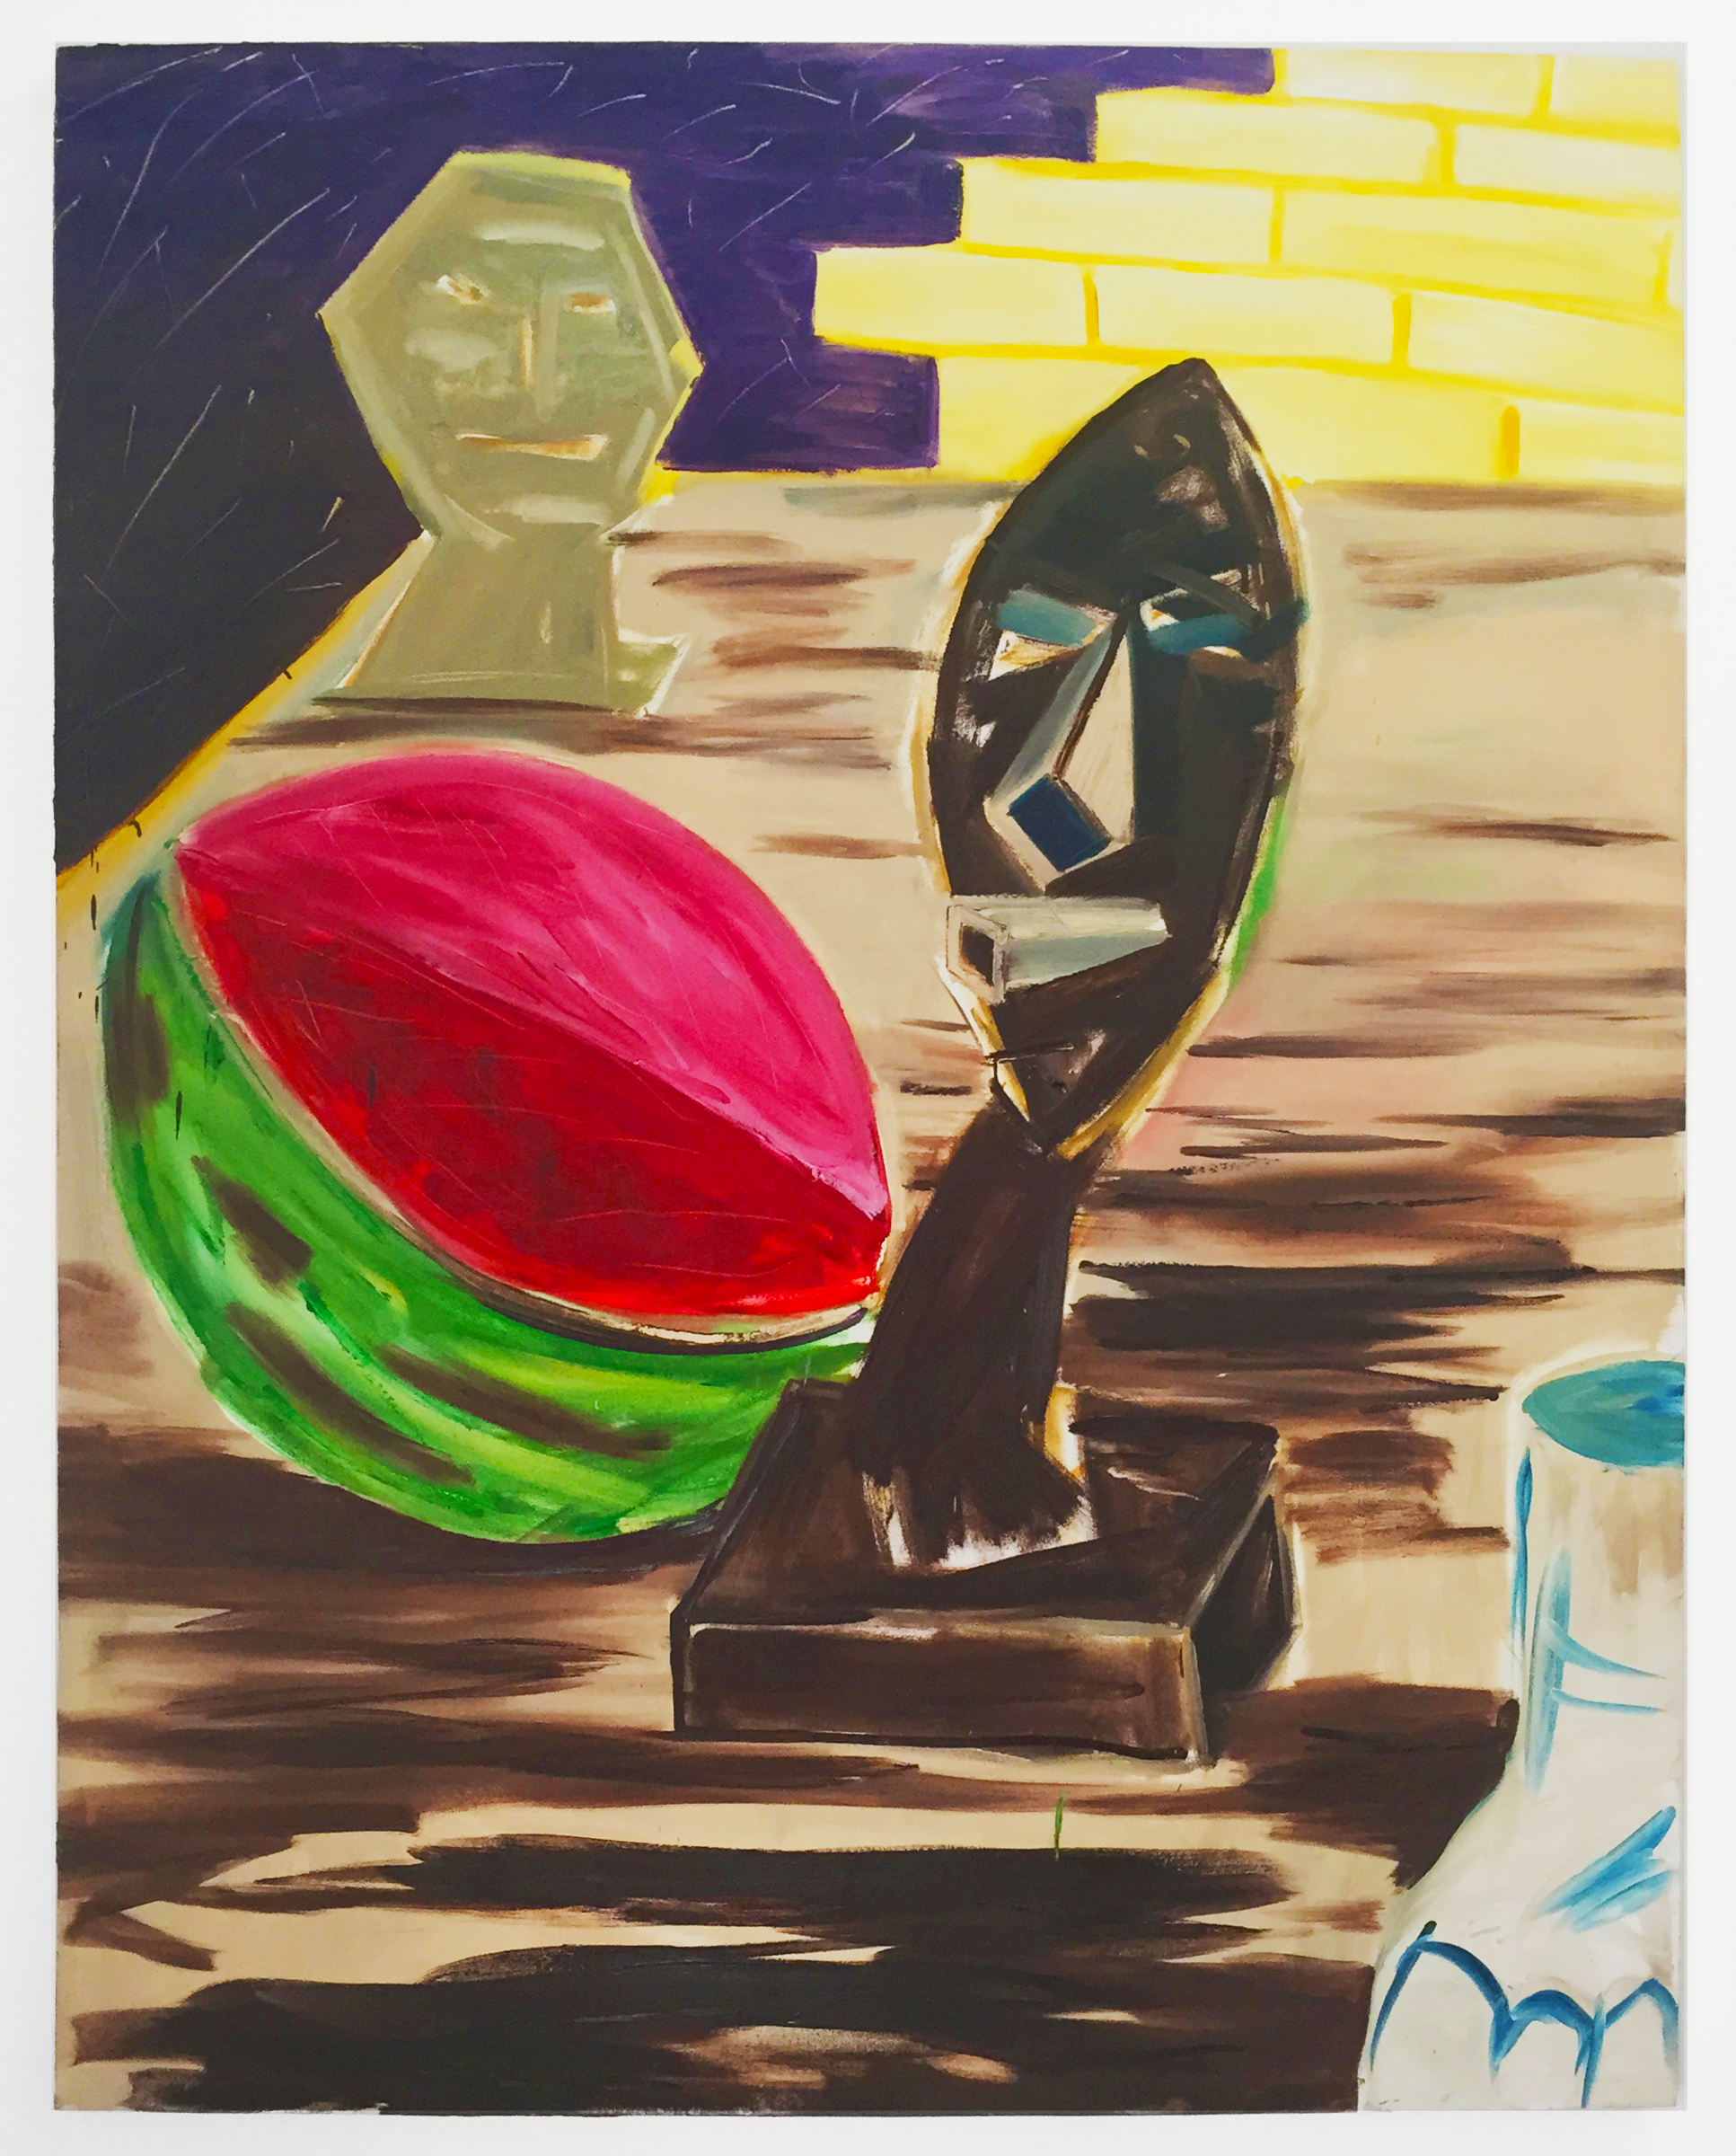 Keith Boadwee & Club Paint, Anthropological Survey , 2015, oil on canvas, 84 x 66 in